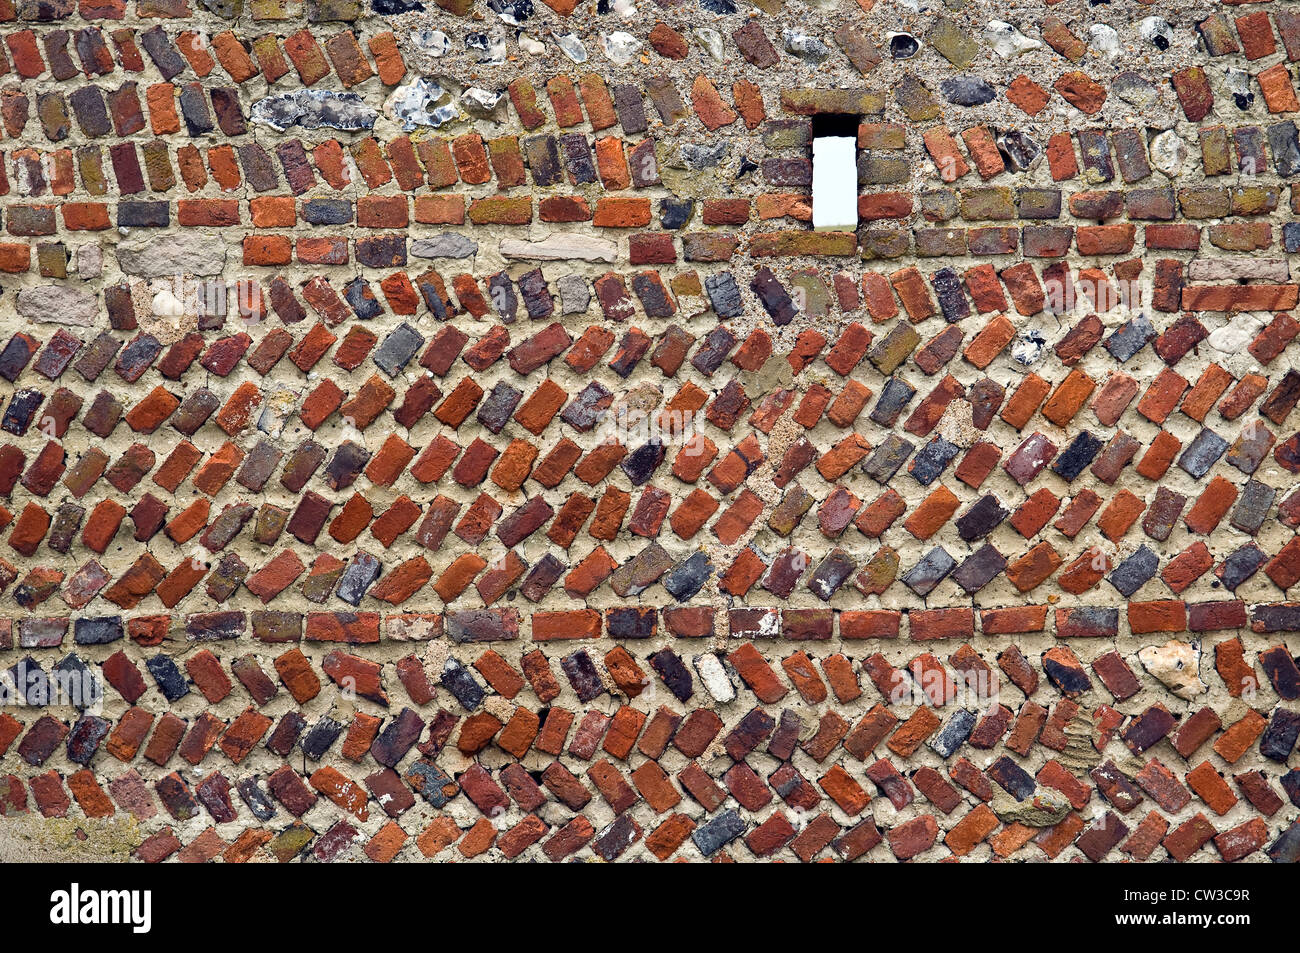 Mixed brick and stonework wall at the old rathfinny for Mixing brick and stone